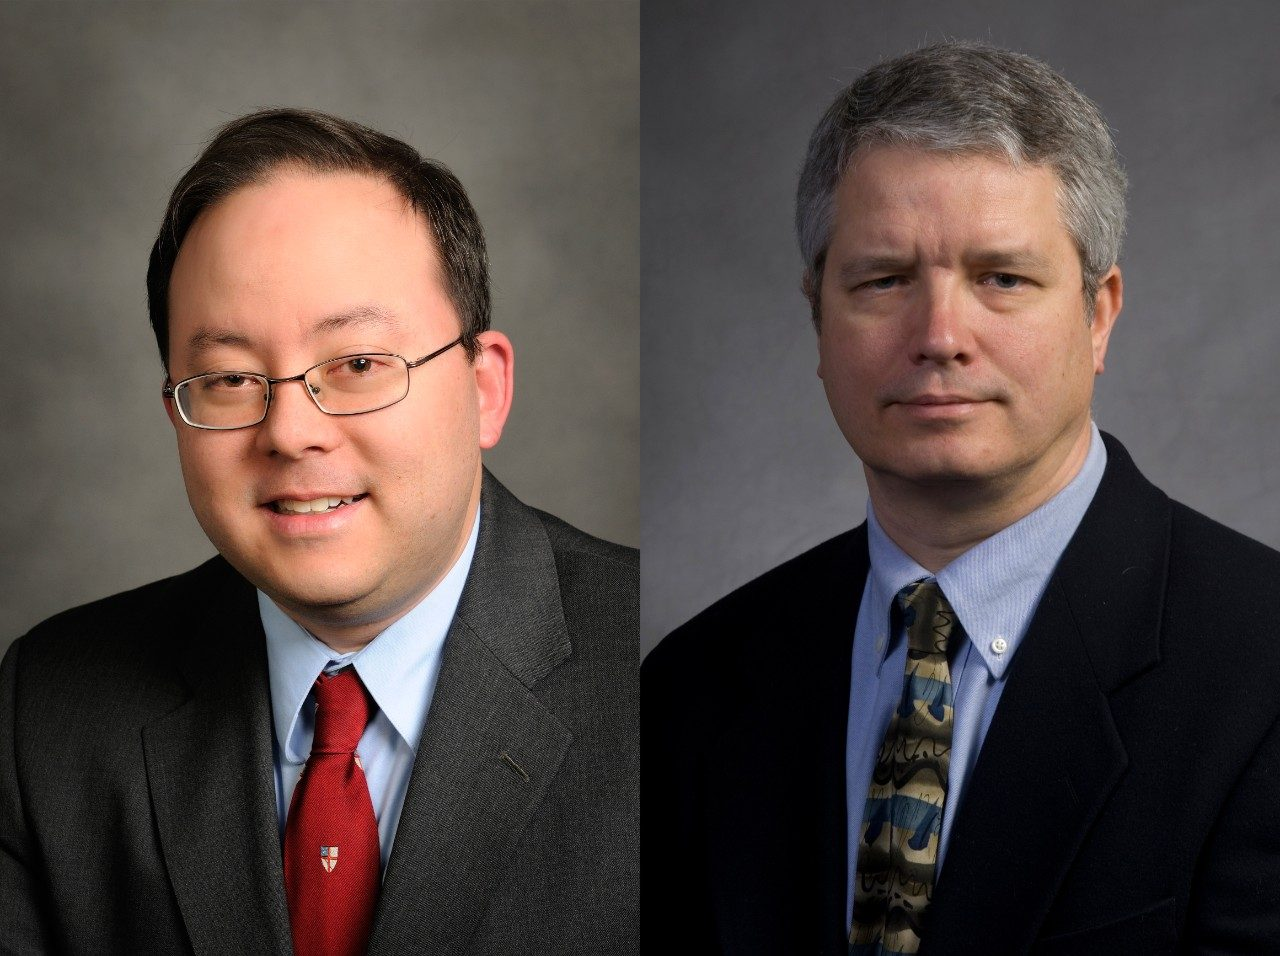 Kenneth H. Wong (left) and Philip A. Skomra